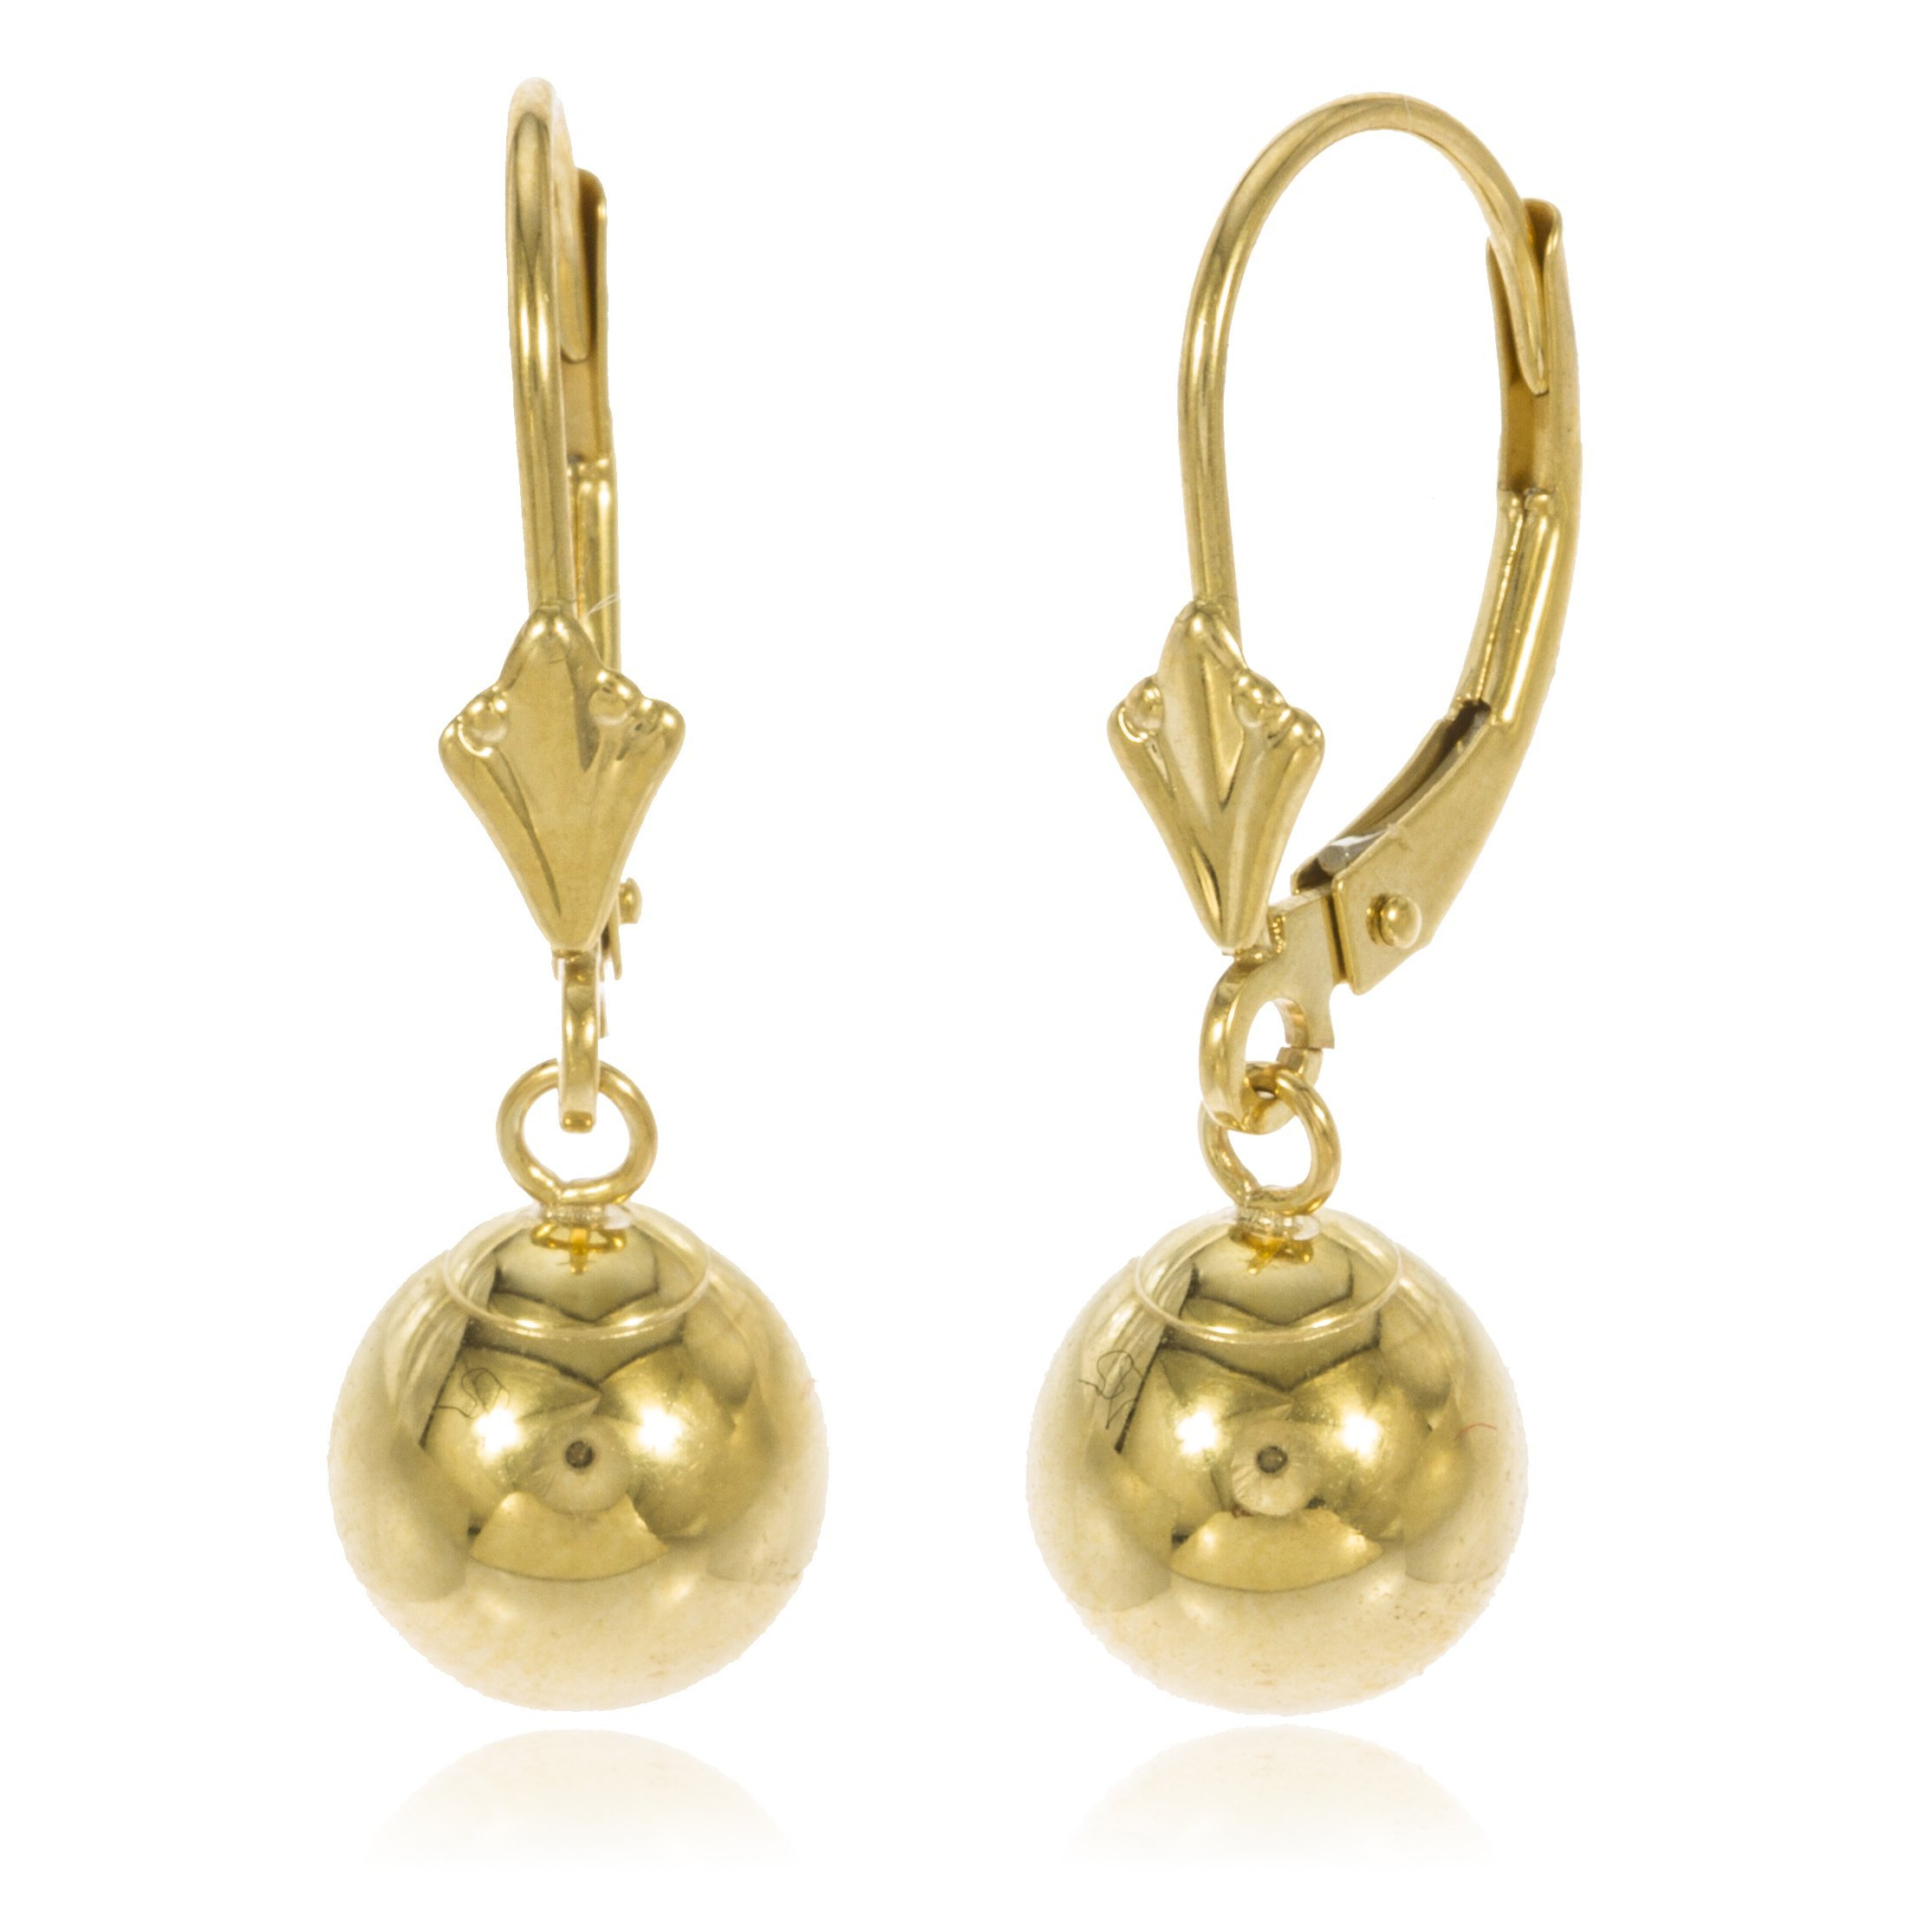 14k Yellow Gold 8mm Dangle Ball Drop Leverback Earrings (GO-573)